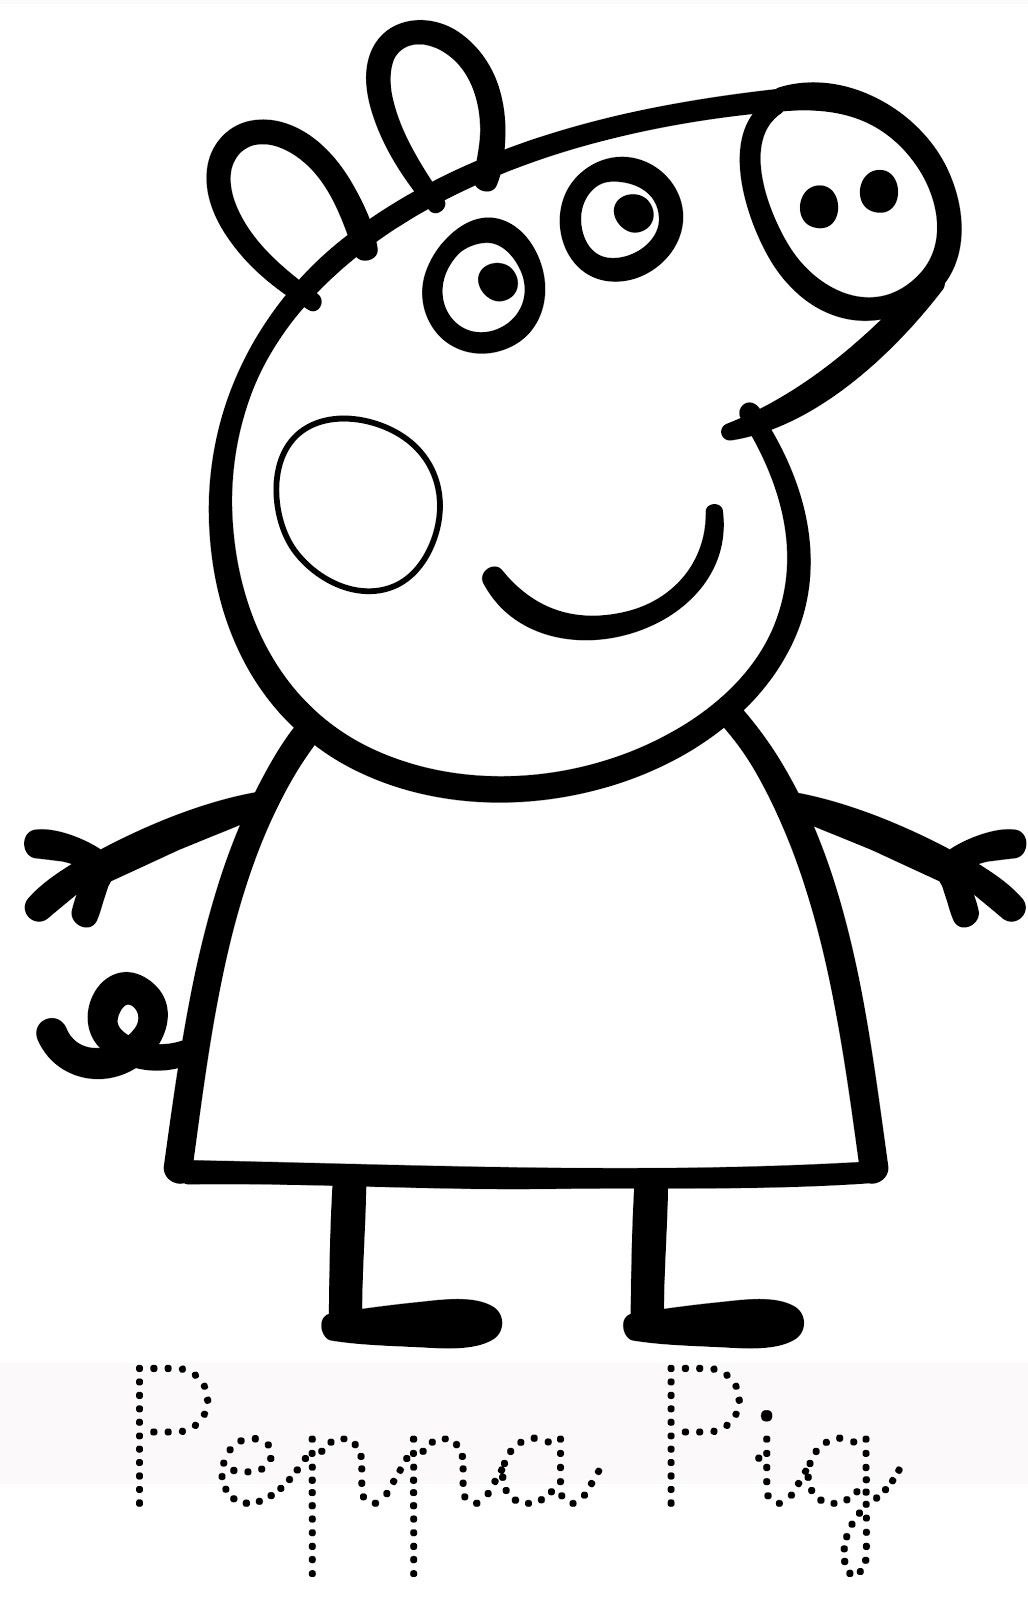 peppa pig drawing - Αναζήτηση Google | peppa pig cake | Pinterest ...